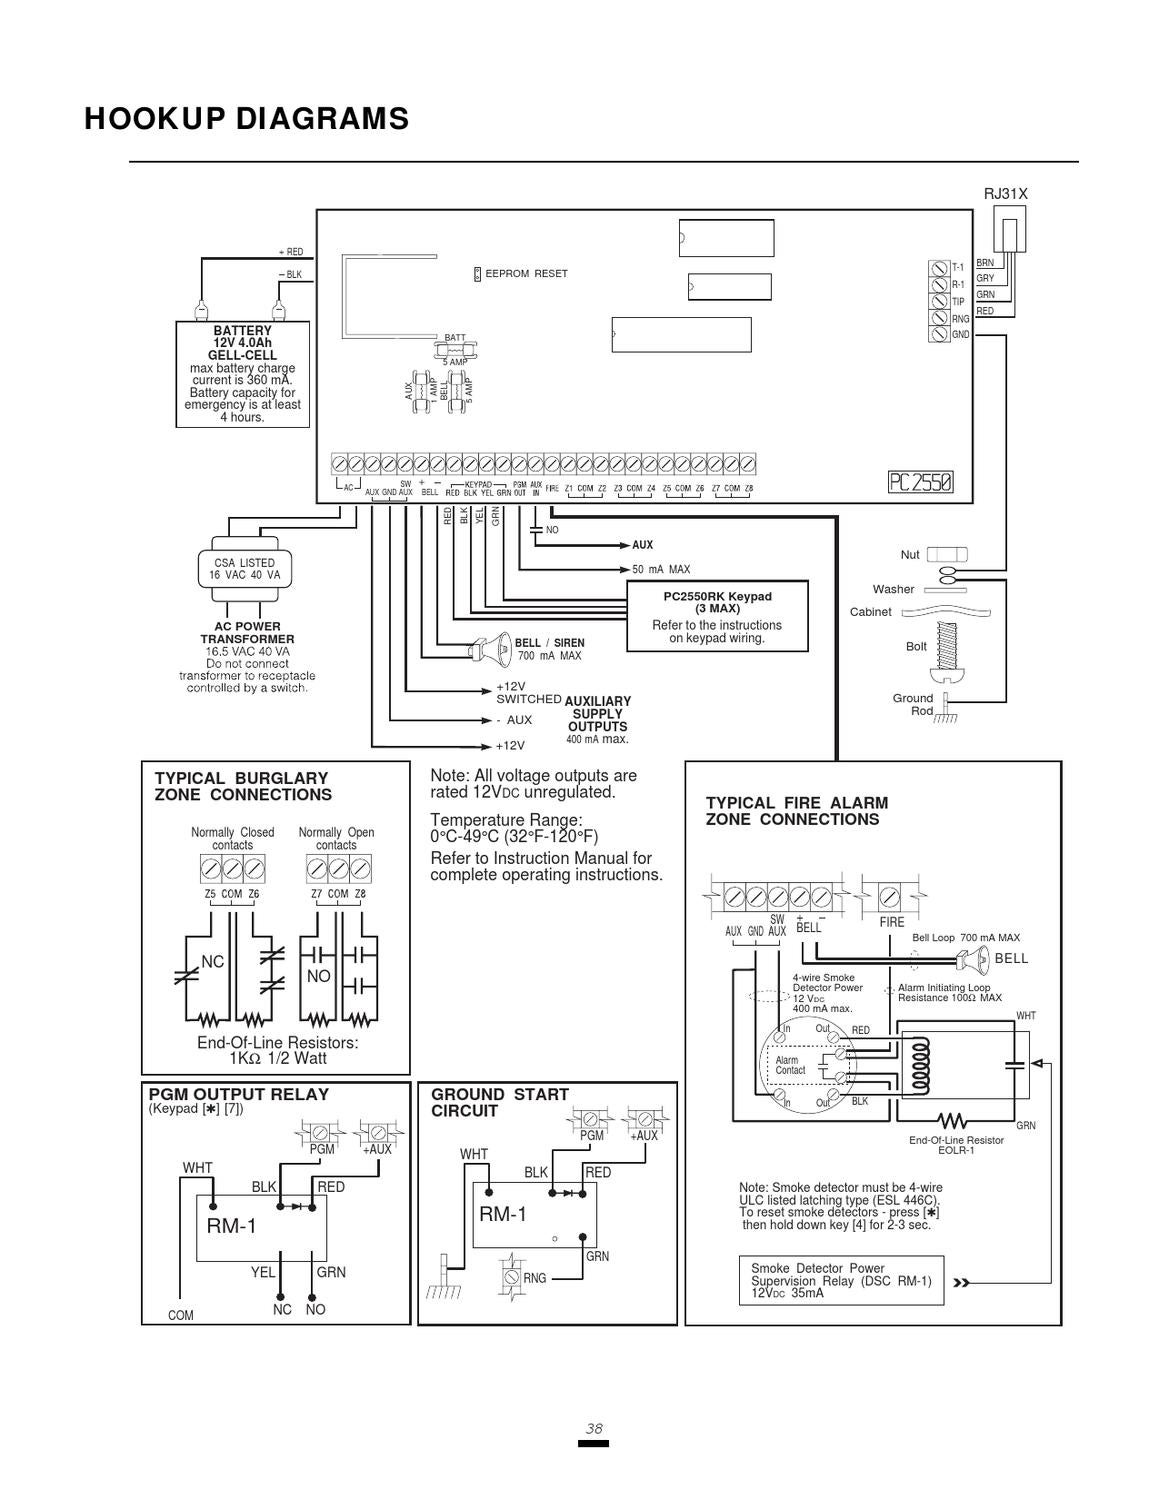 page_38  Wire Range Wiring Diagram on 3 wire fan diagram, ac plug wiring diagram, 3 phase wiring diagram,